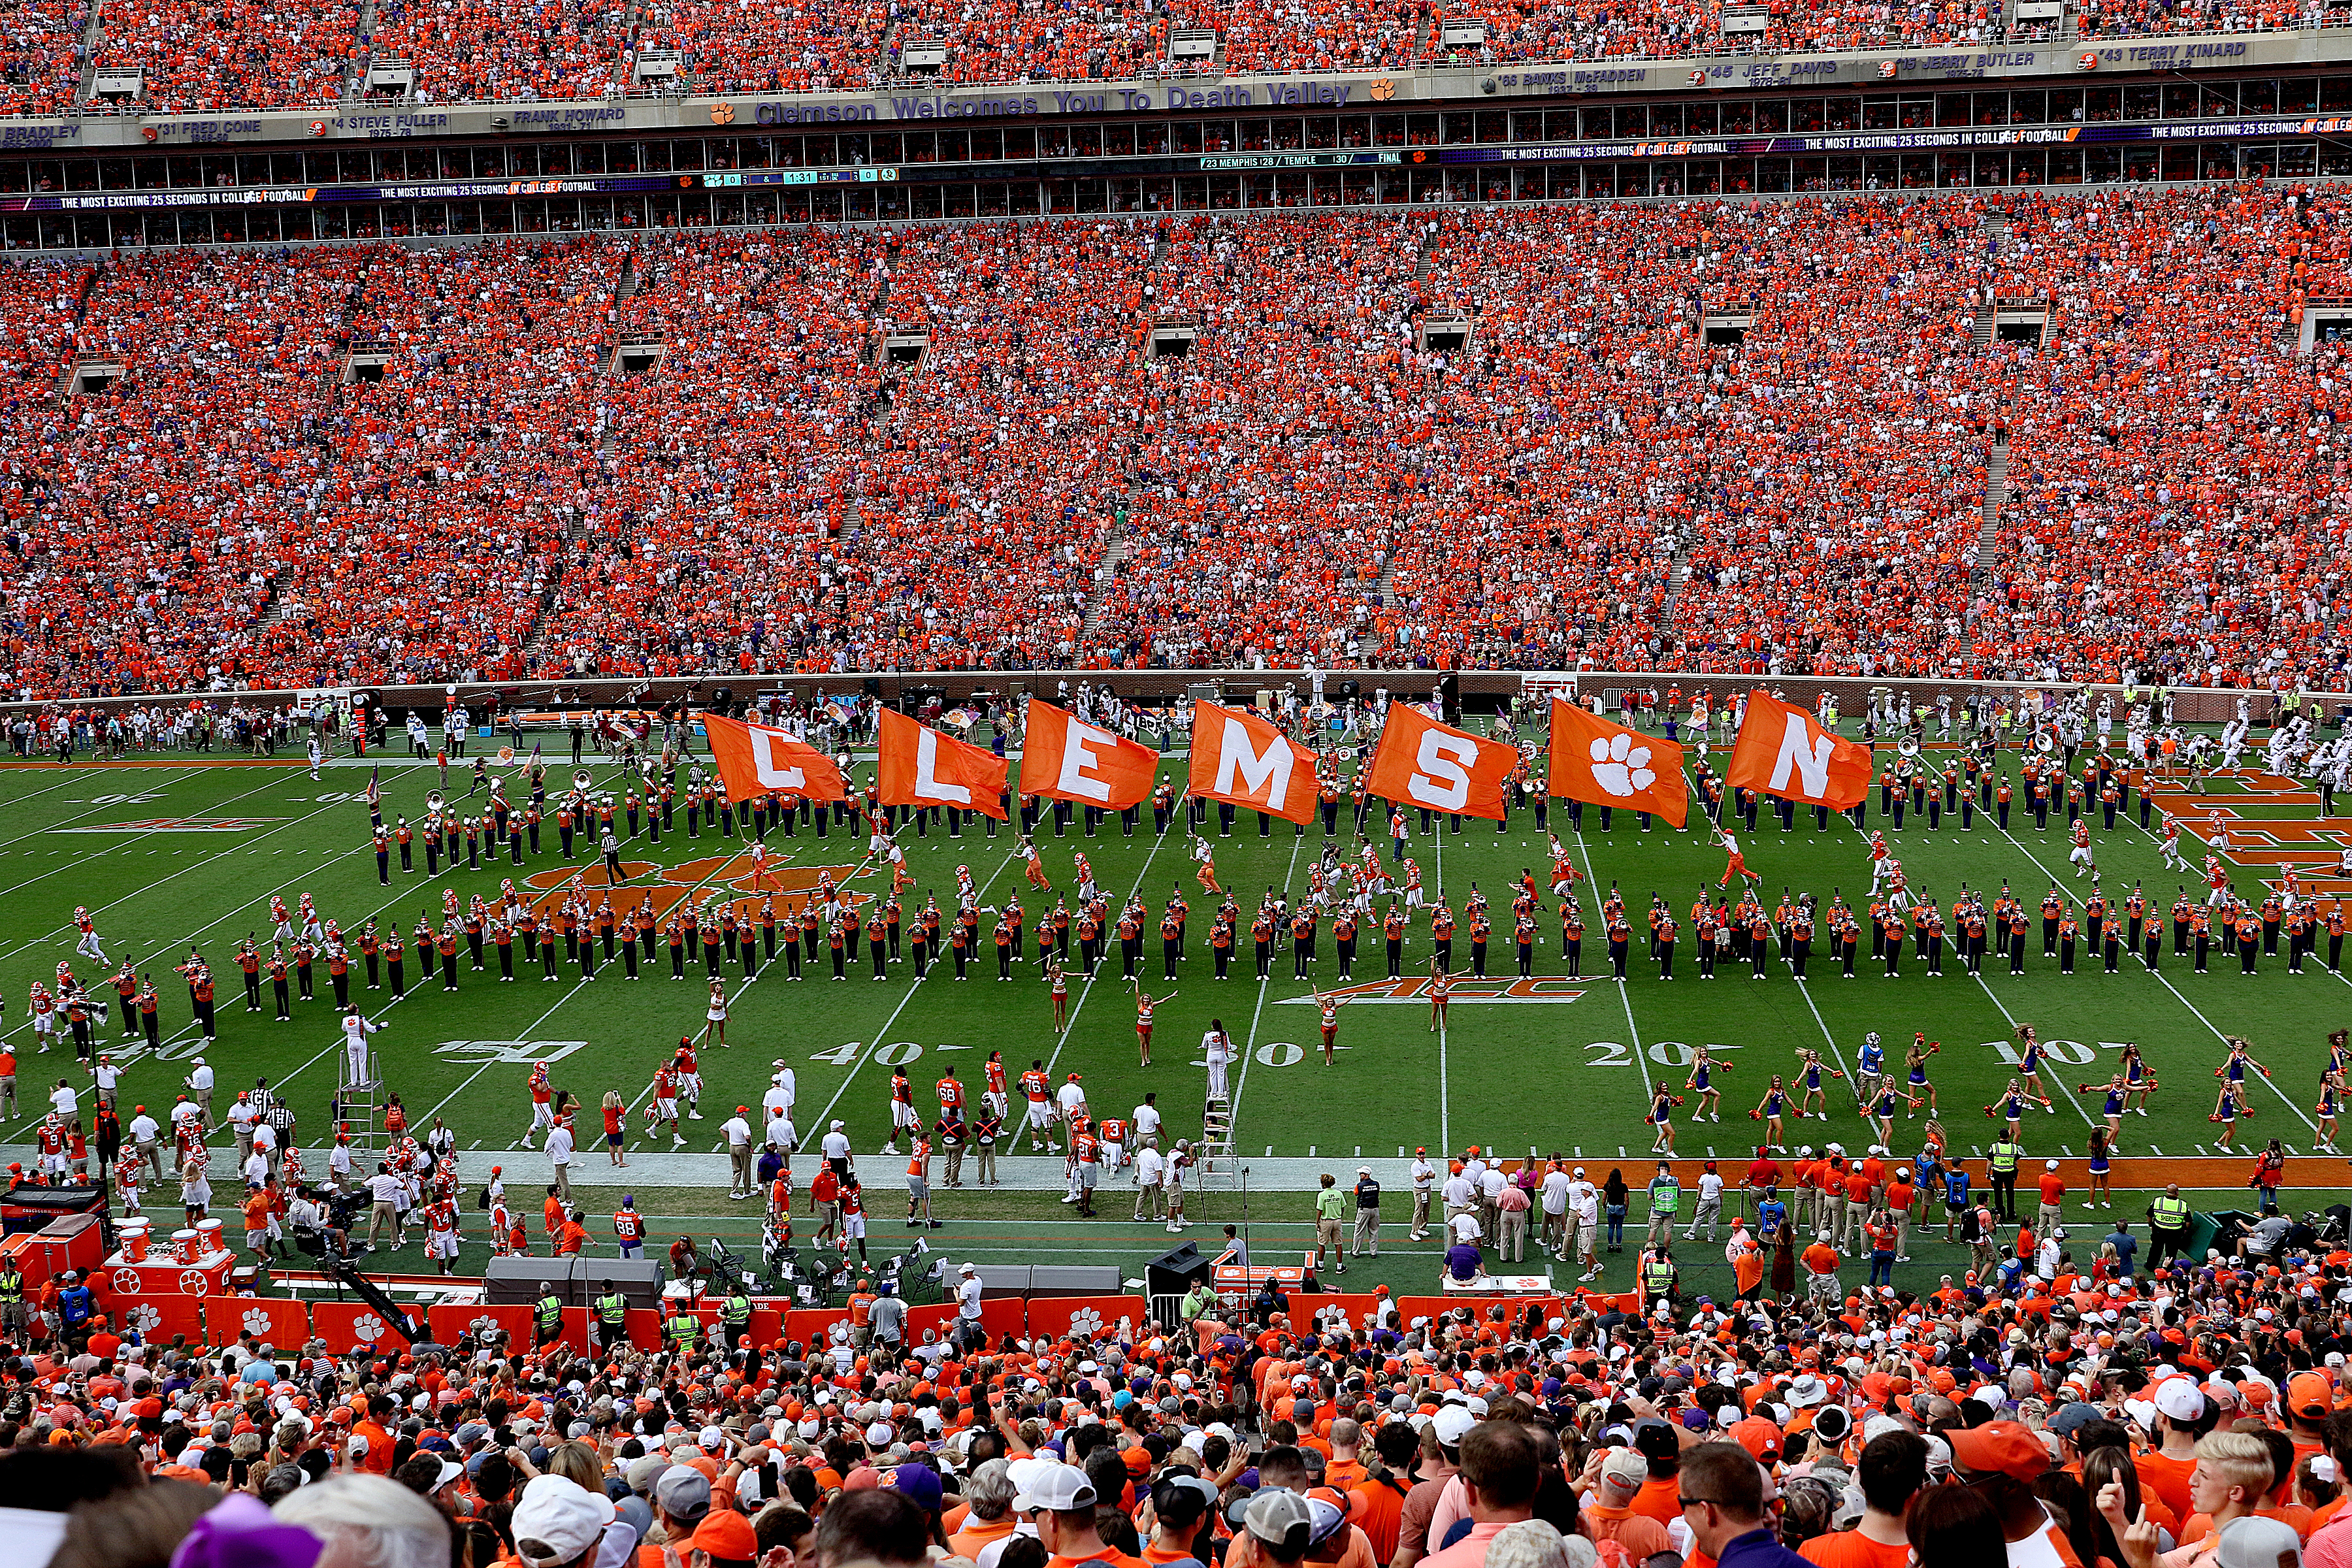 COLLEGE FOOTBALL: OCT 12 Florida State at Clemson